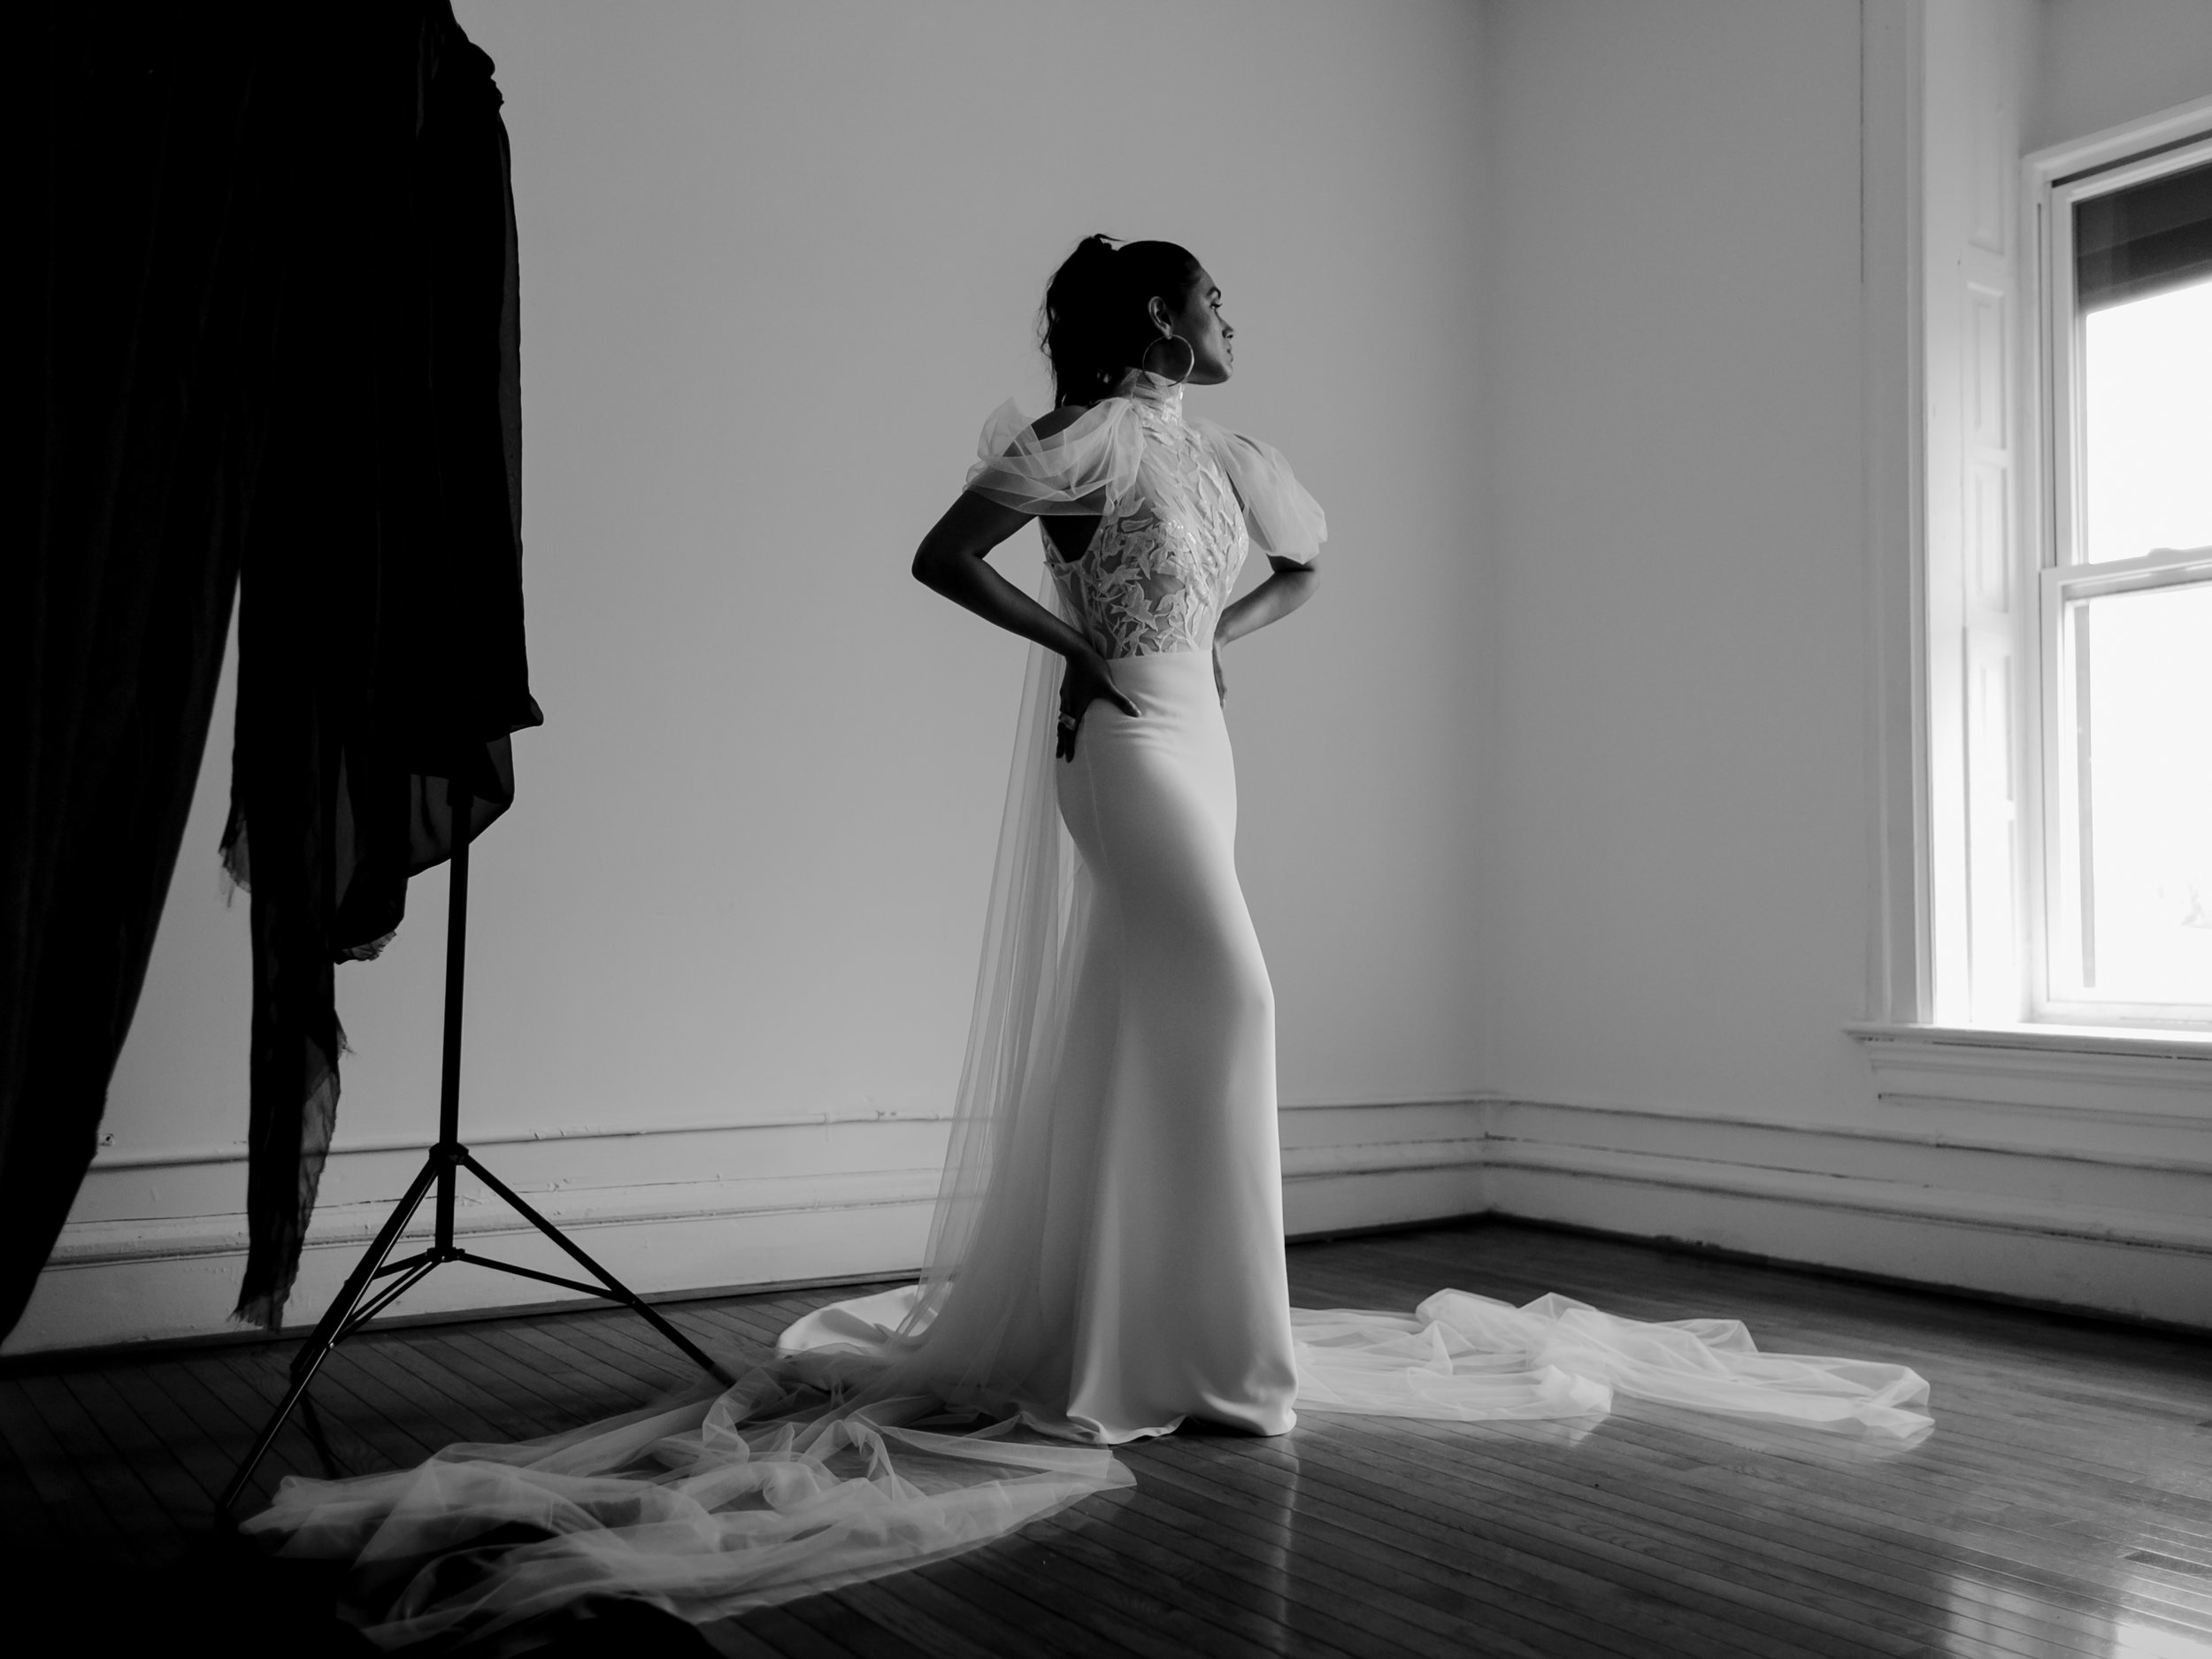 Chicago-Bride-Wedding-Dress-Varca-Edited-252.jpg